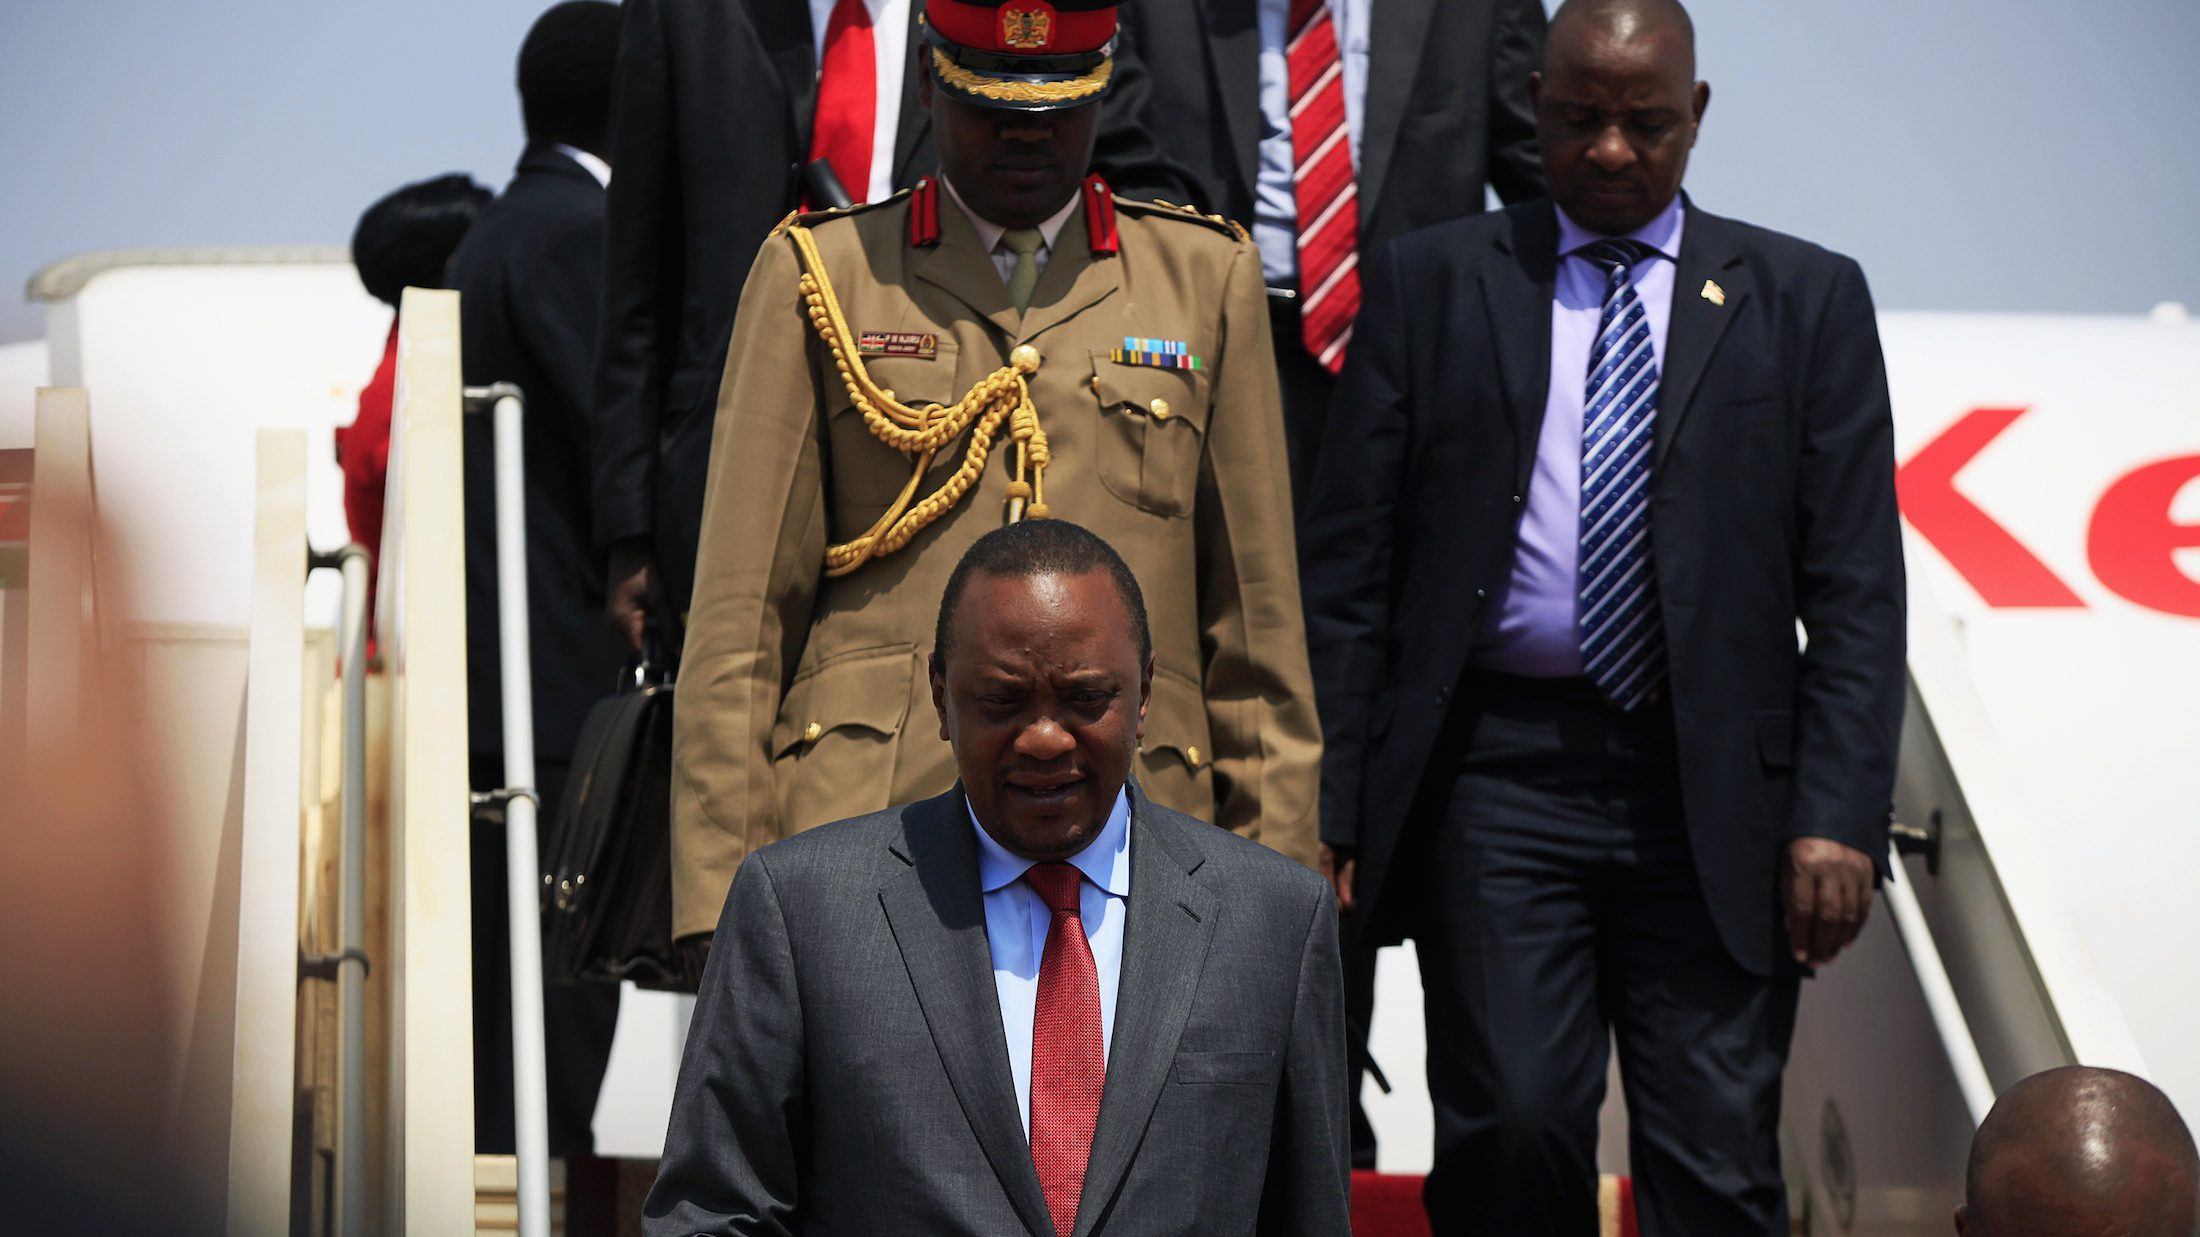 Kenya's President Uhuru Kenyatta (bottom L) arrives at the airport in Juba,